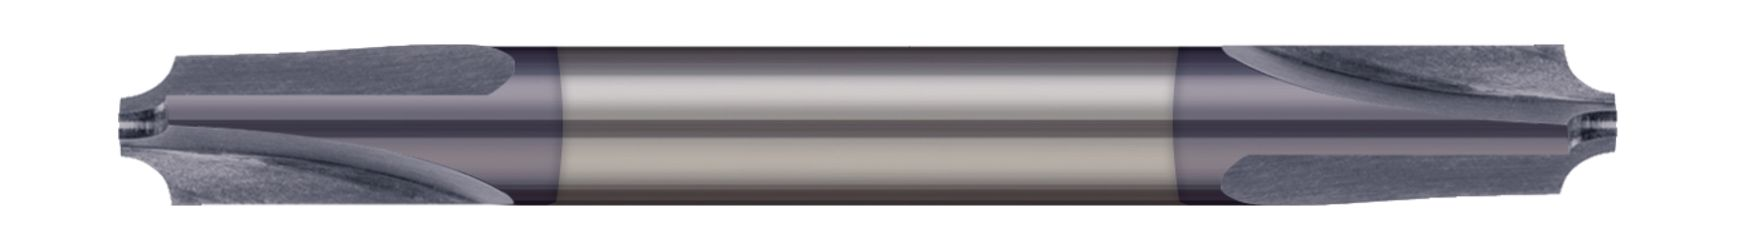 Corner Rounding End Mills - 3 Flute - Double-Ended